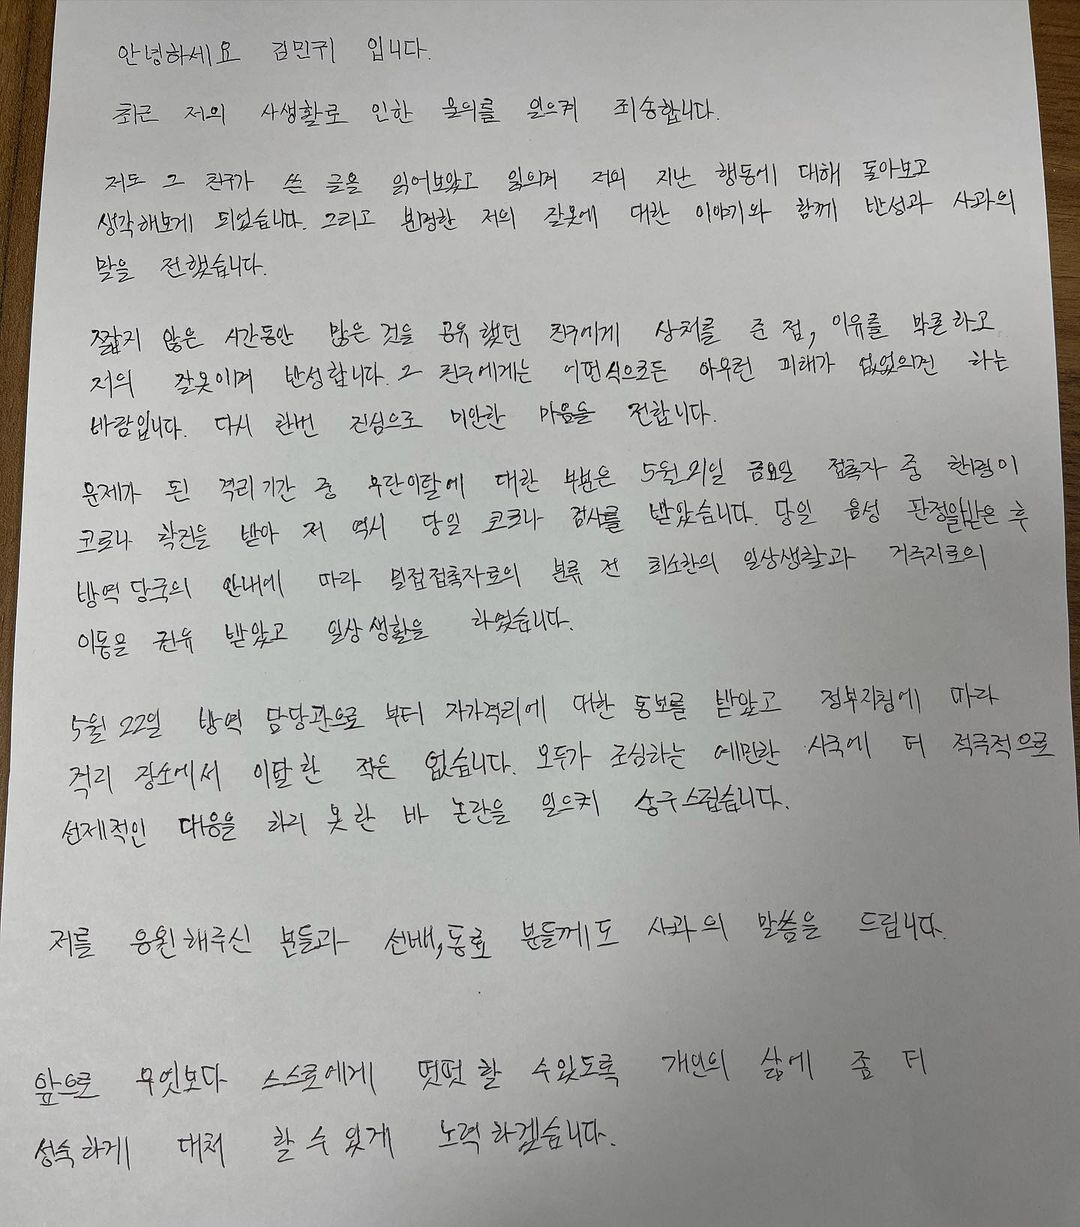 kim min-gwi cheating - apology letter